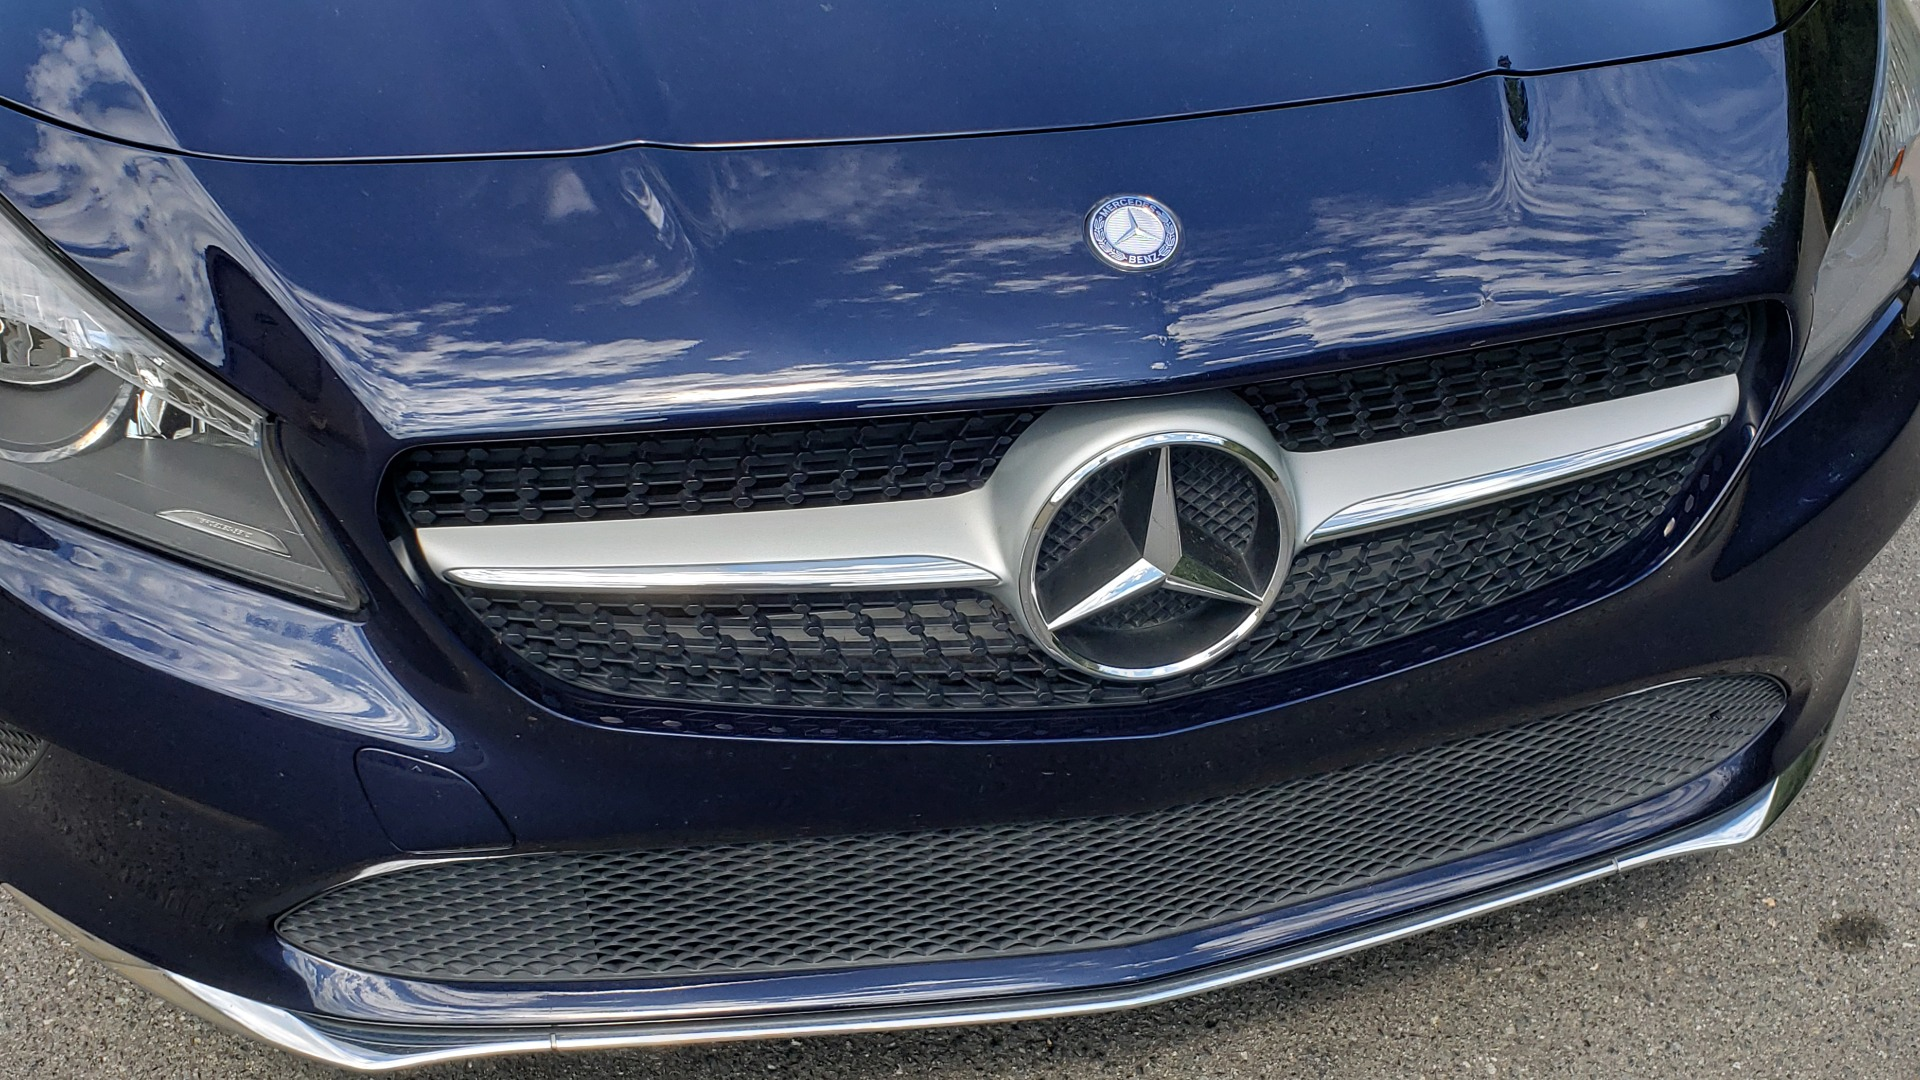 Used 2017 Mercedes-Benz CLA 250 PREMIUM / PANO-ROOF / HK SOUNDS / BSM / REARVIEW for sale Sold at Formula Imports in Charlotte NC 28227 20